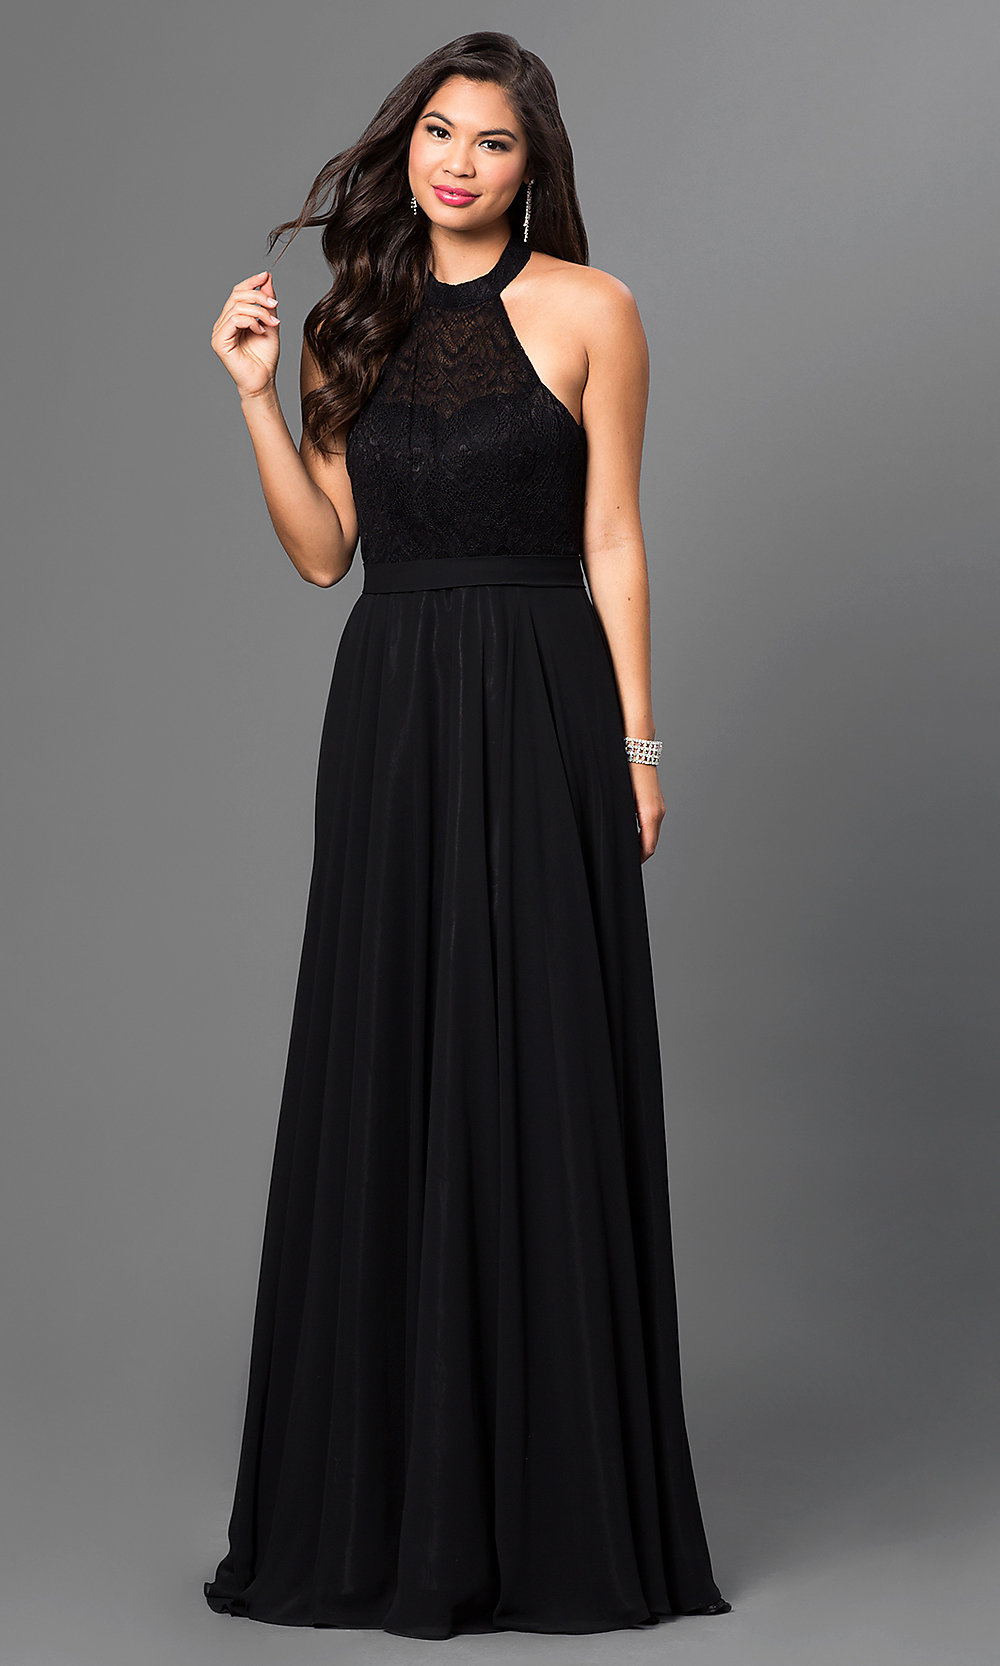 Prom Dresses, Celebrity Dresses, Sexy Evening Gowns: NA-8233